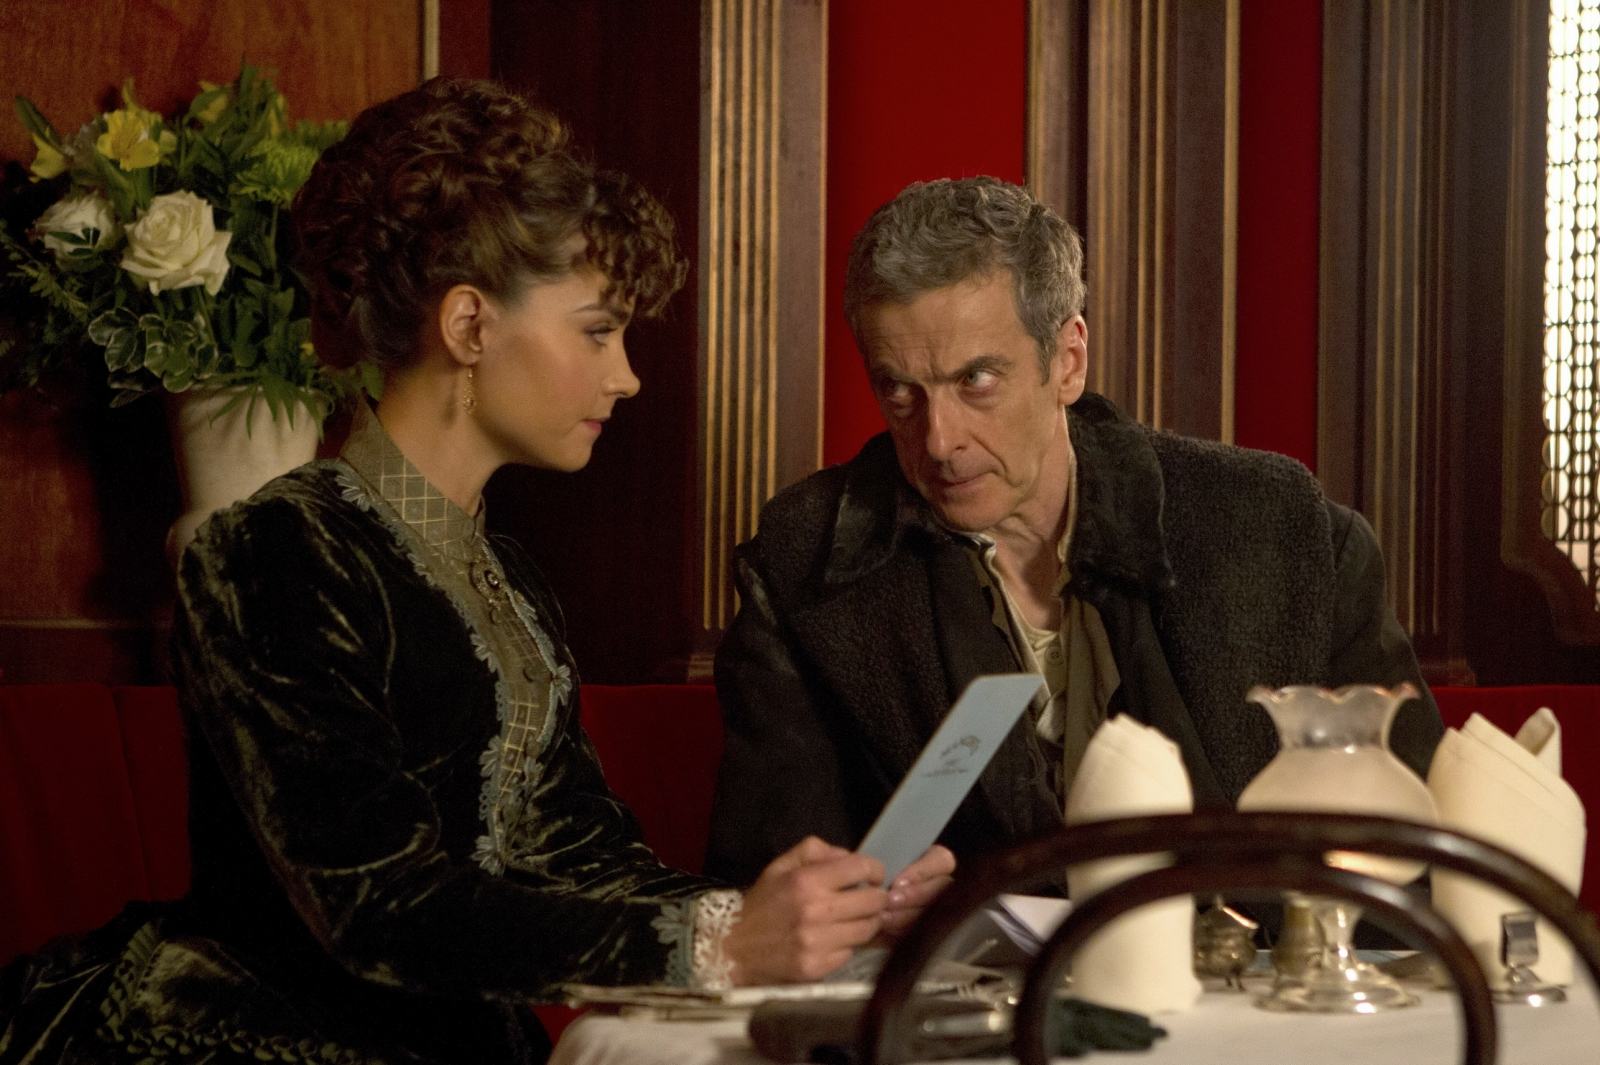 Peter Capaldi and Jemma Coleman star as the 12 Doctor and his companion in Deep Breath, the first episode of the new series of Doctor Who